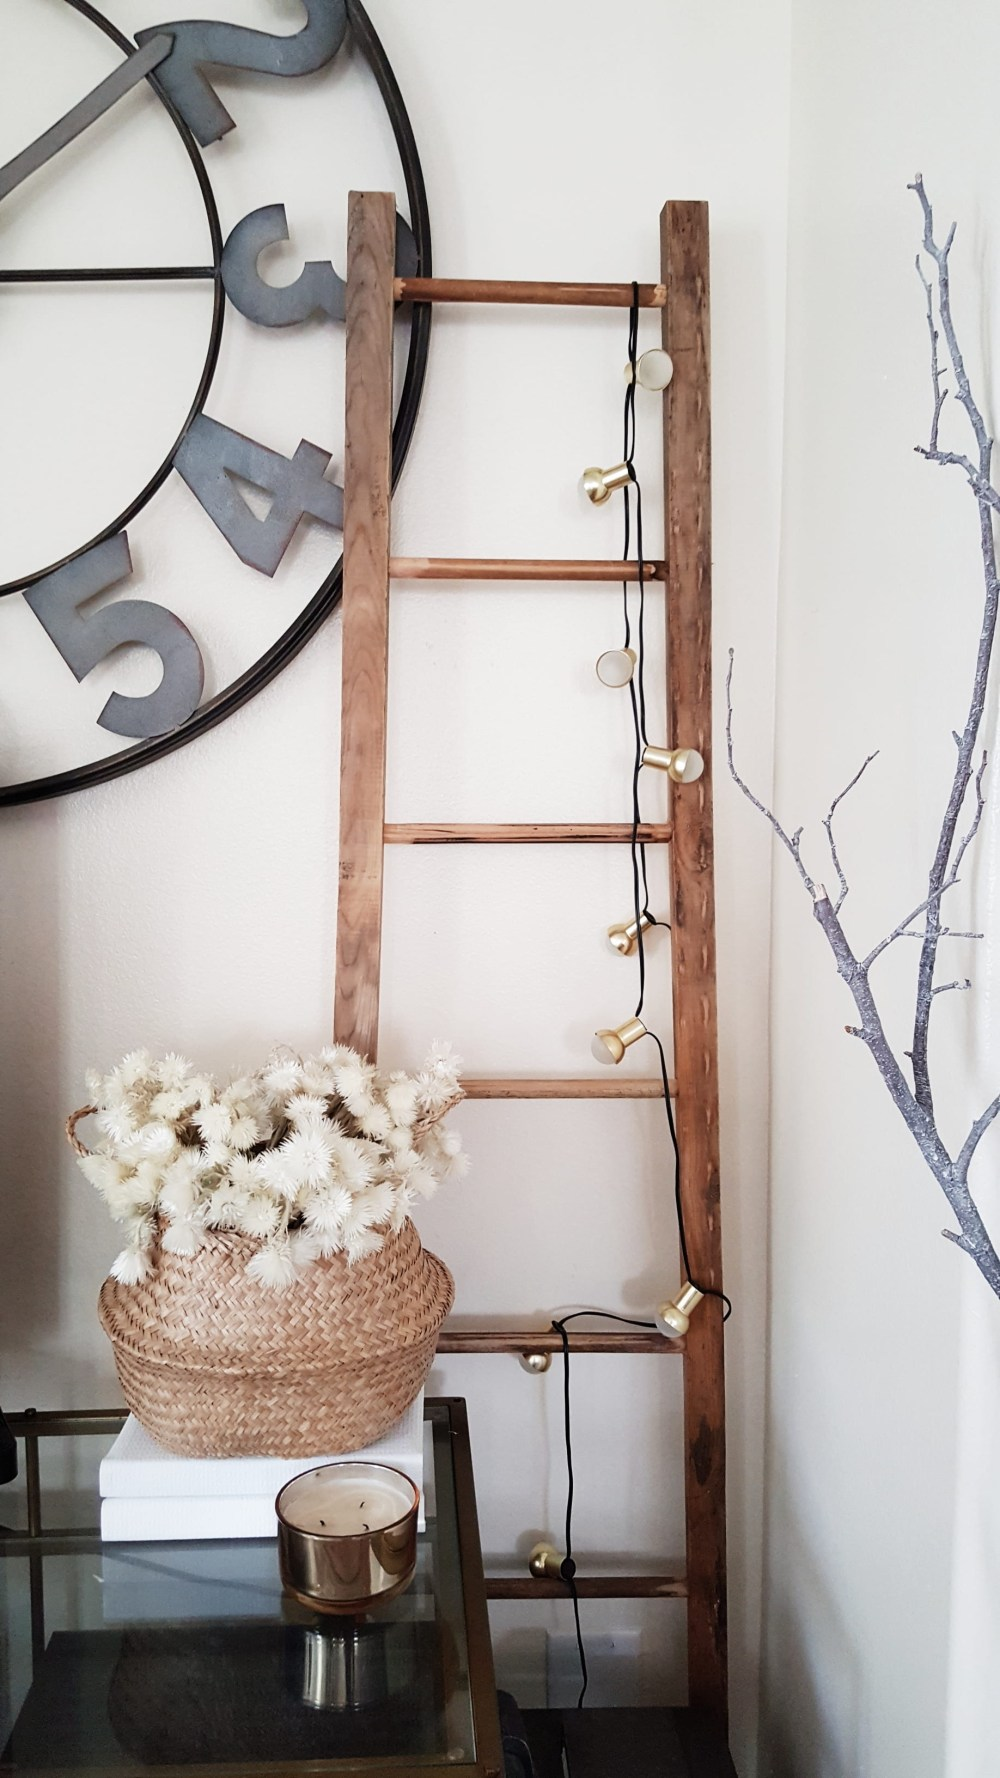 Modern Farmhouse Eclectic Industrial Decor Design Wood Ladder Vintage Antiques Rugs Living Room Inspiration Black and White Scandinavian Decor Decorating ideas Fall Winter